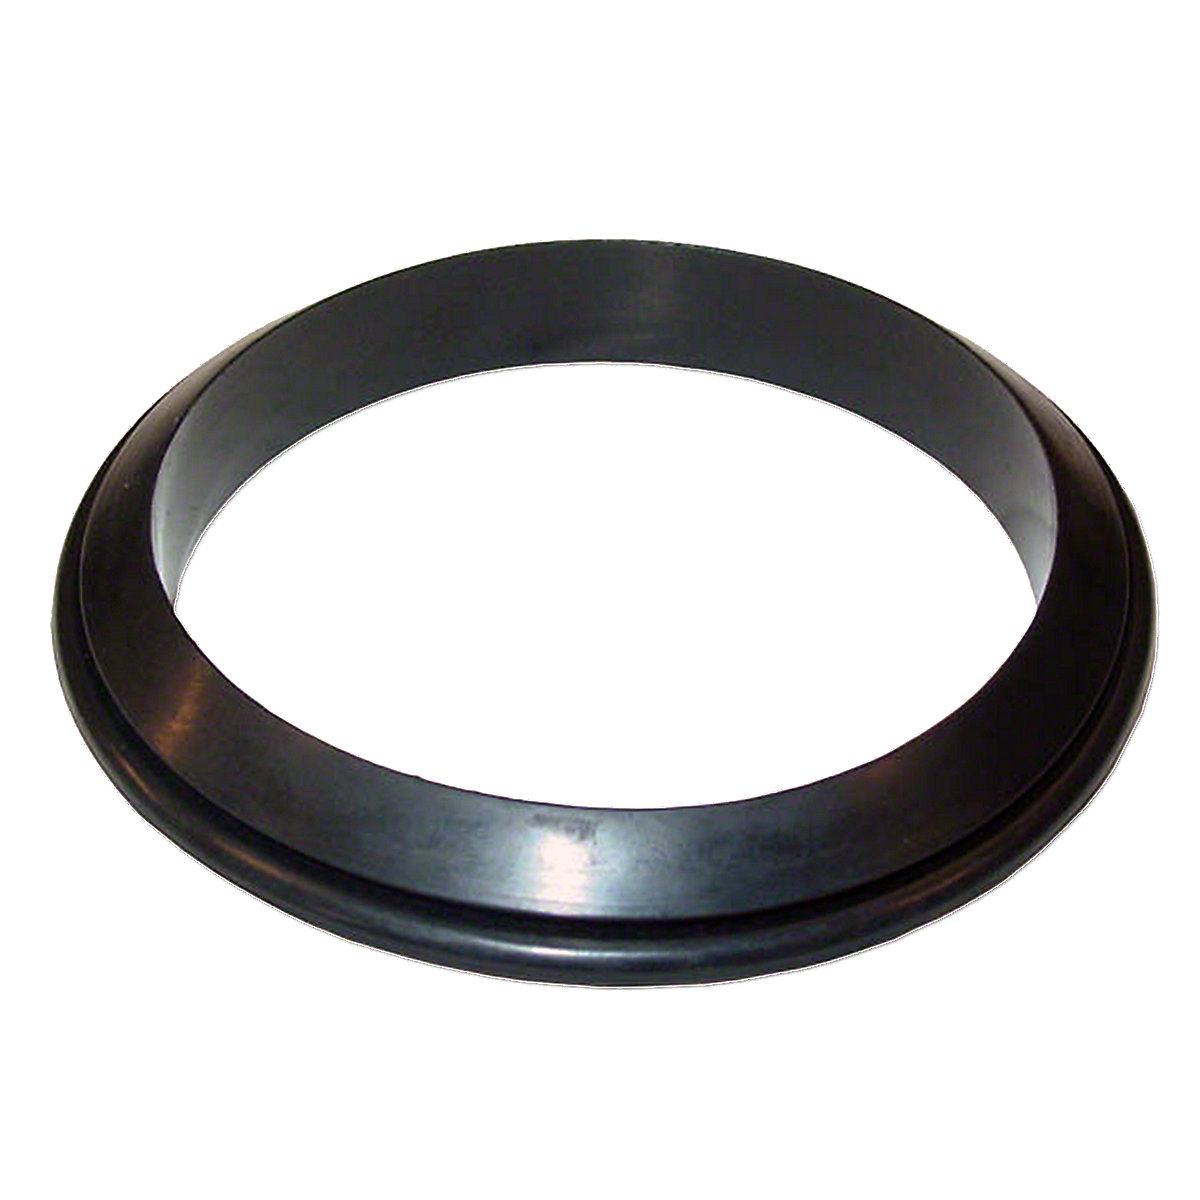 Air Cleaner Pipe Grommet For Allis Chalmers: 210, 220, 7000, 7010, 7020, 7030, 7040, 7045, 7050, 7060.